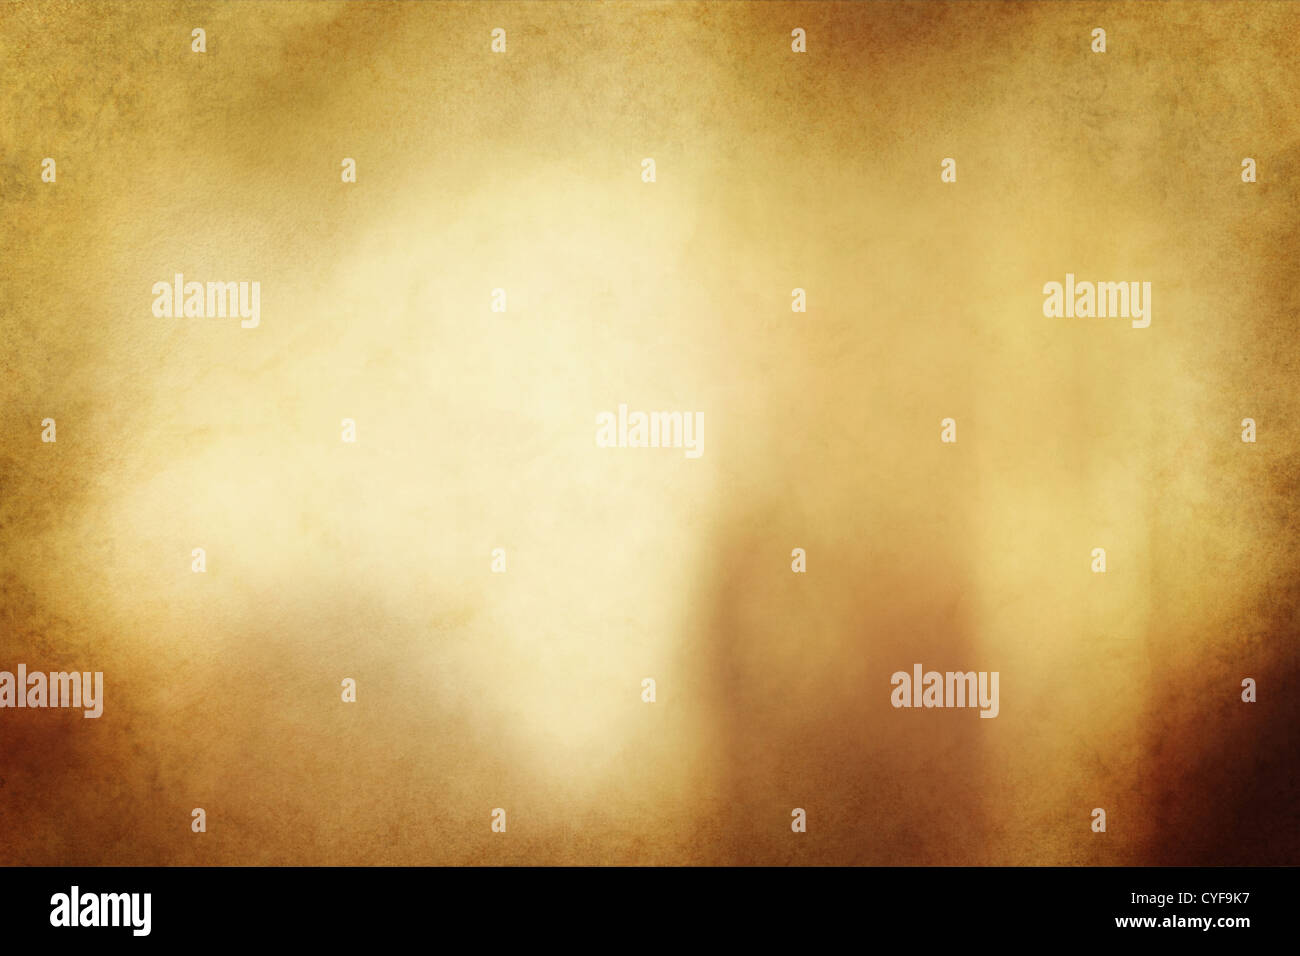 An eerie golden bronze colored grunge texture or background with space for text or image. - Stock Image